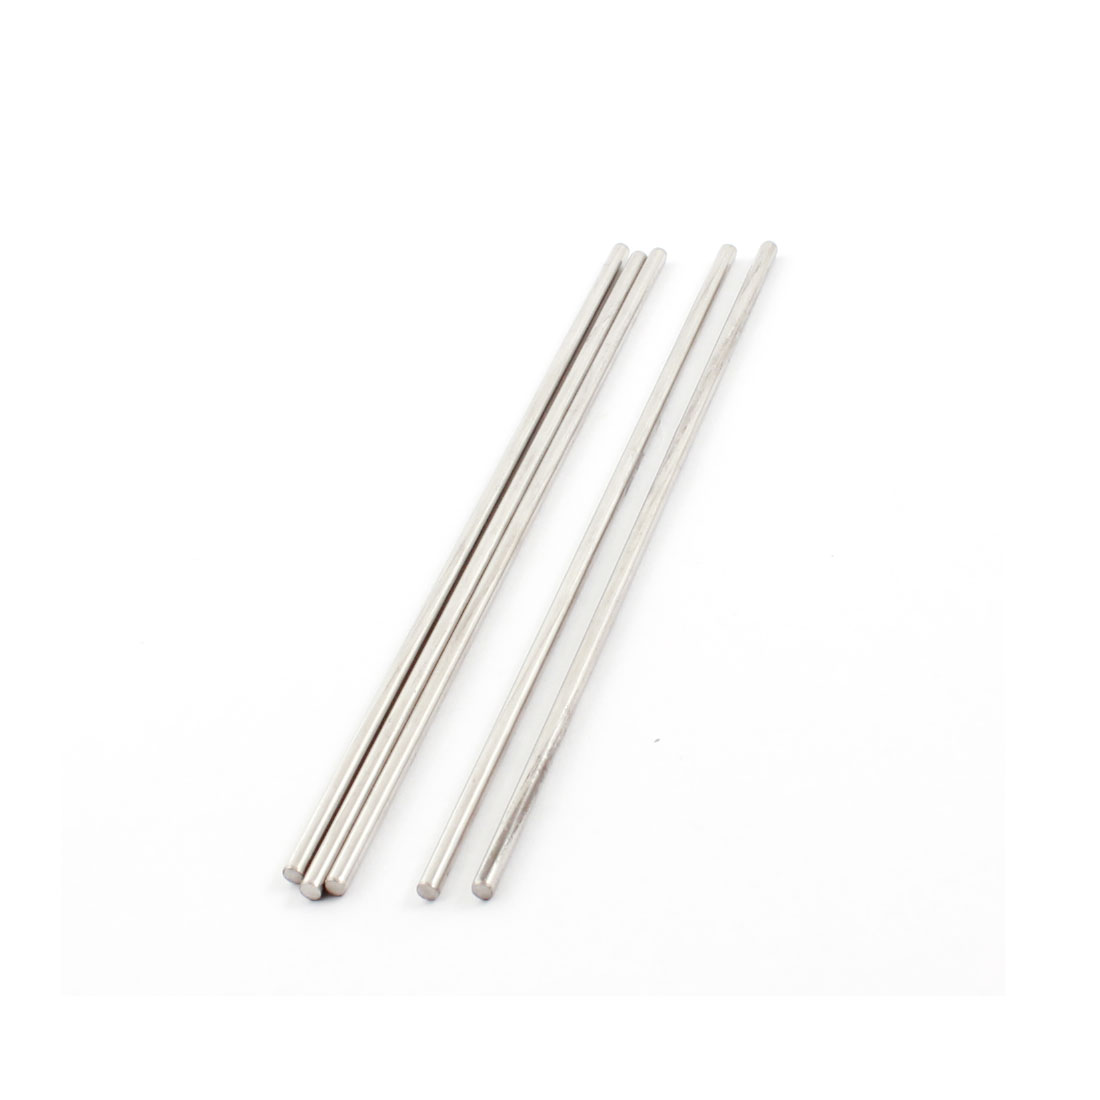 5pcs 120mmx2.5mm Silver Tone Stainless Steel Straight Axles Round Shaft Rod Bar for DIY RC Model Toy